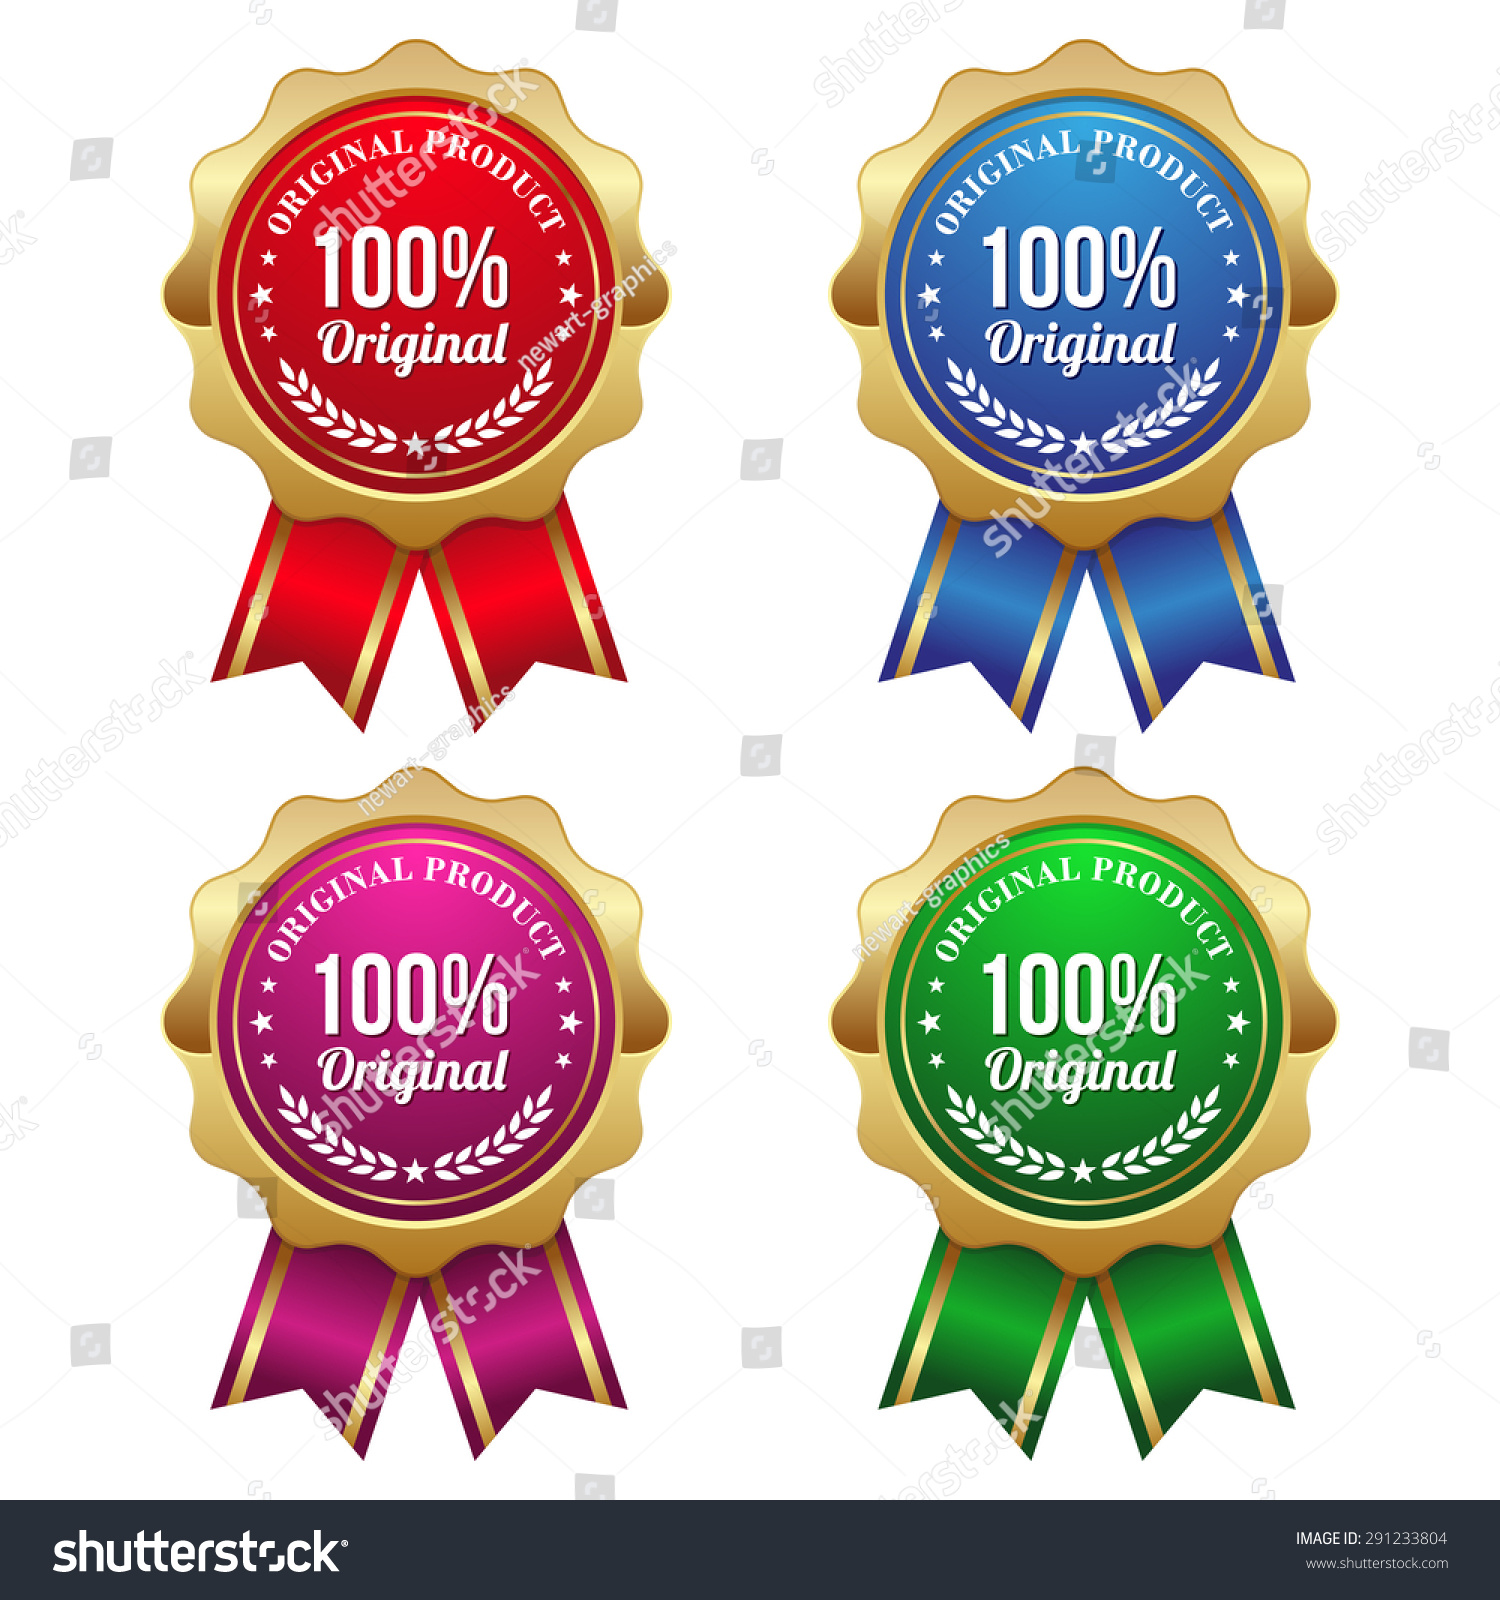 Gold 100 percent original badges with ribbon on white background